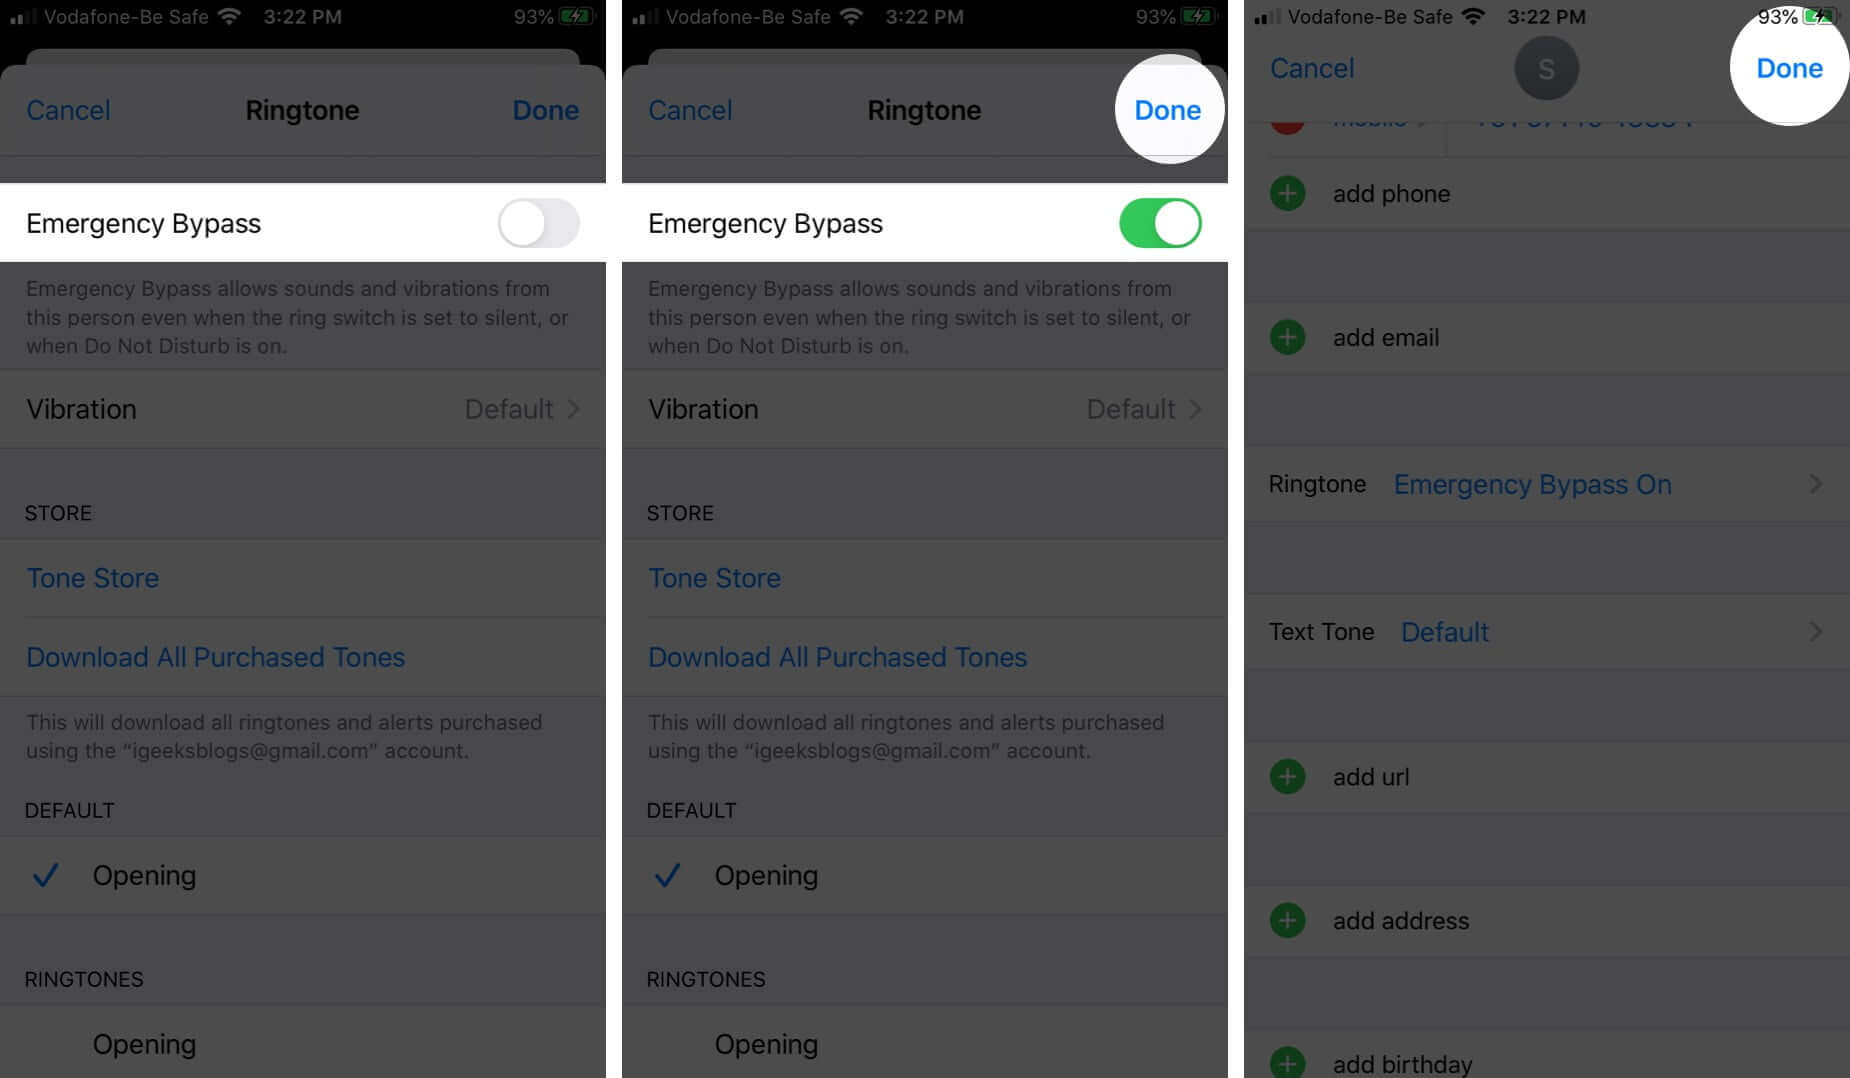 Turn ON Emergency Bypass for Phone Calls on iPhone or iPad